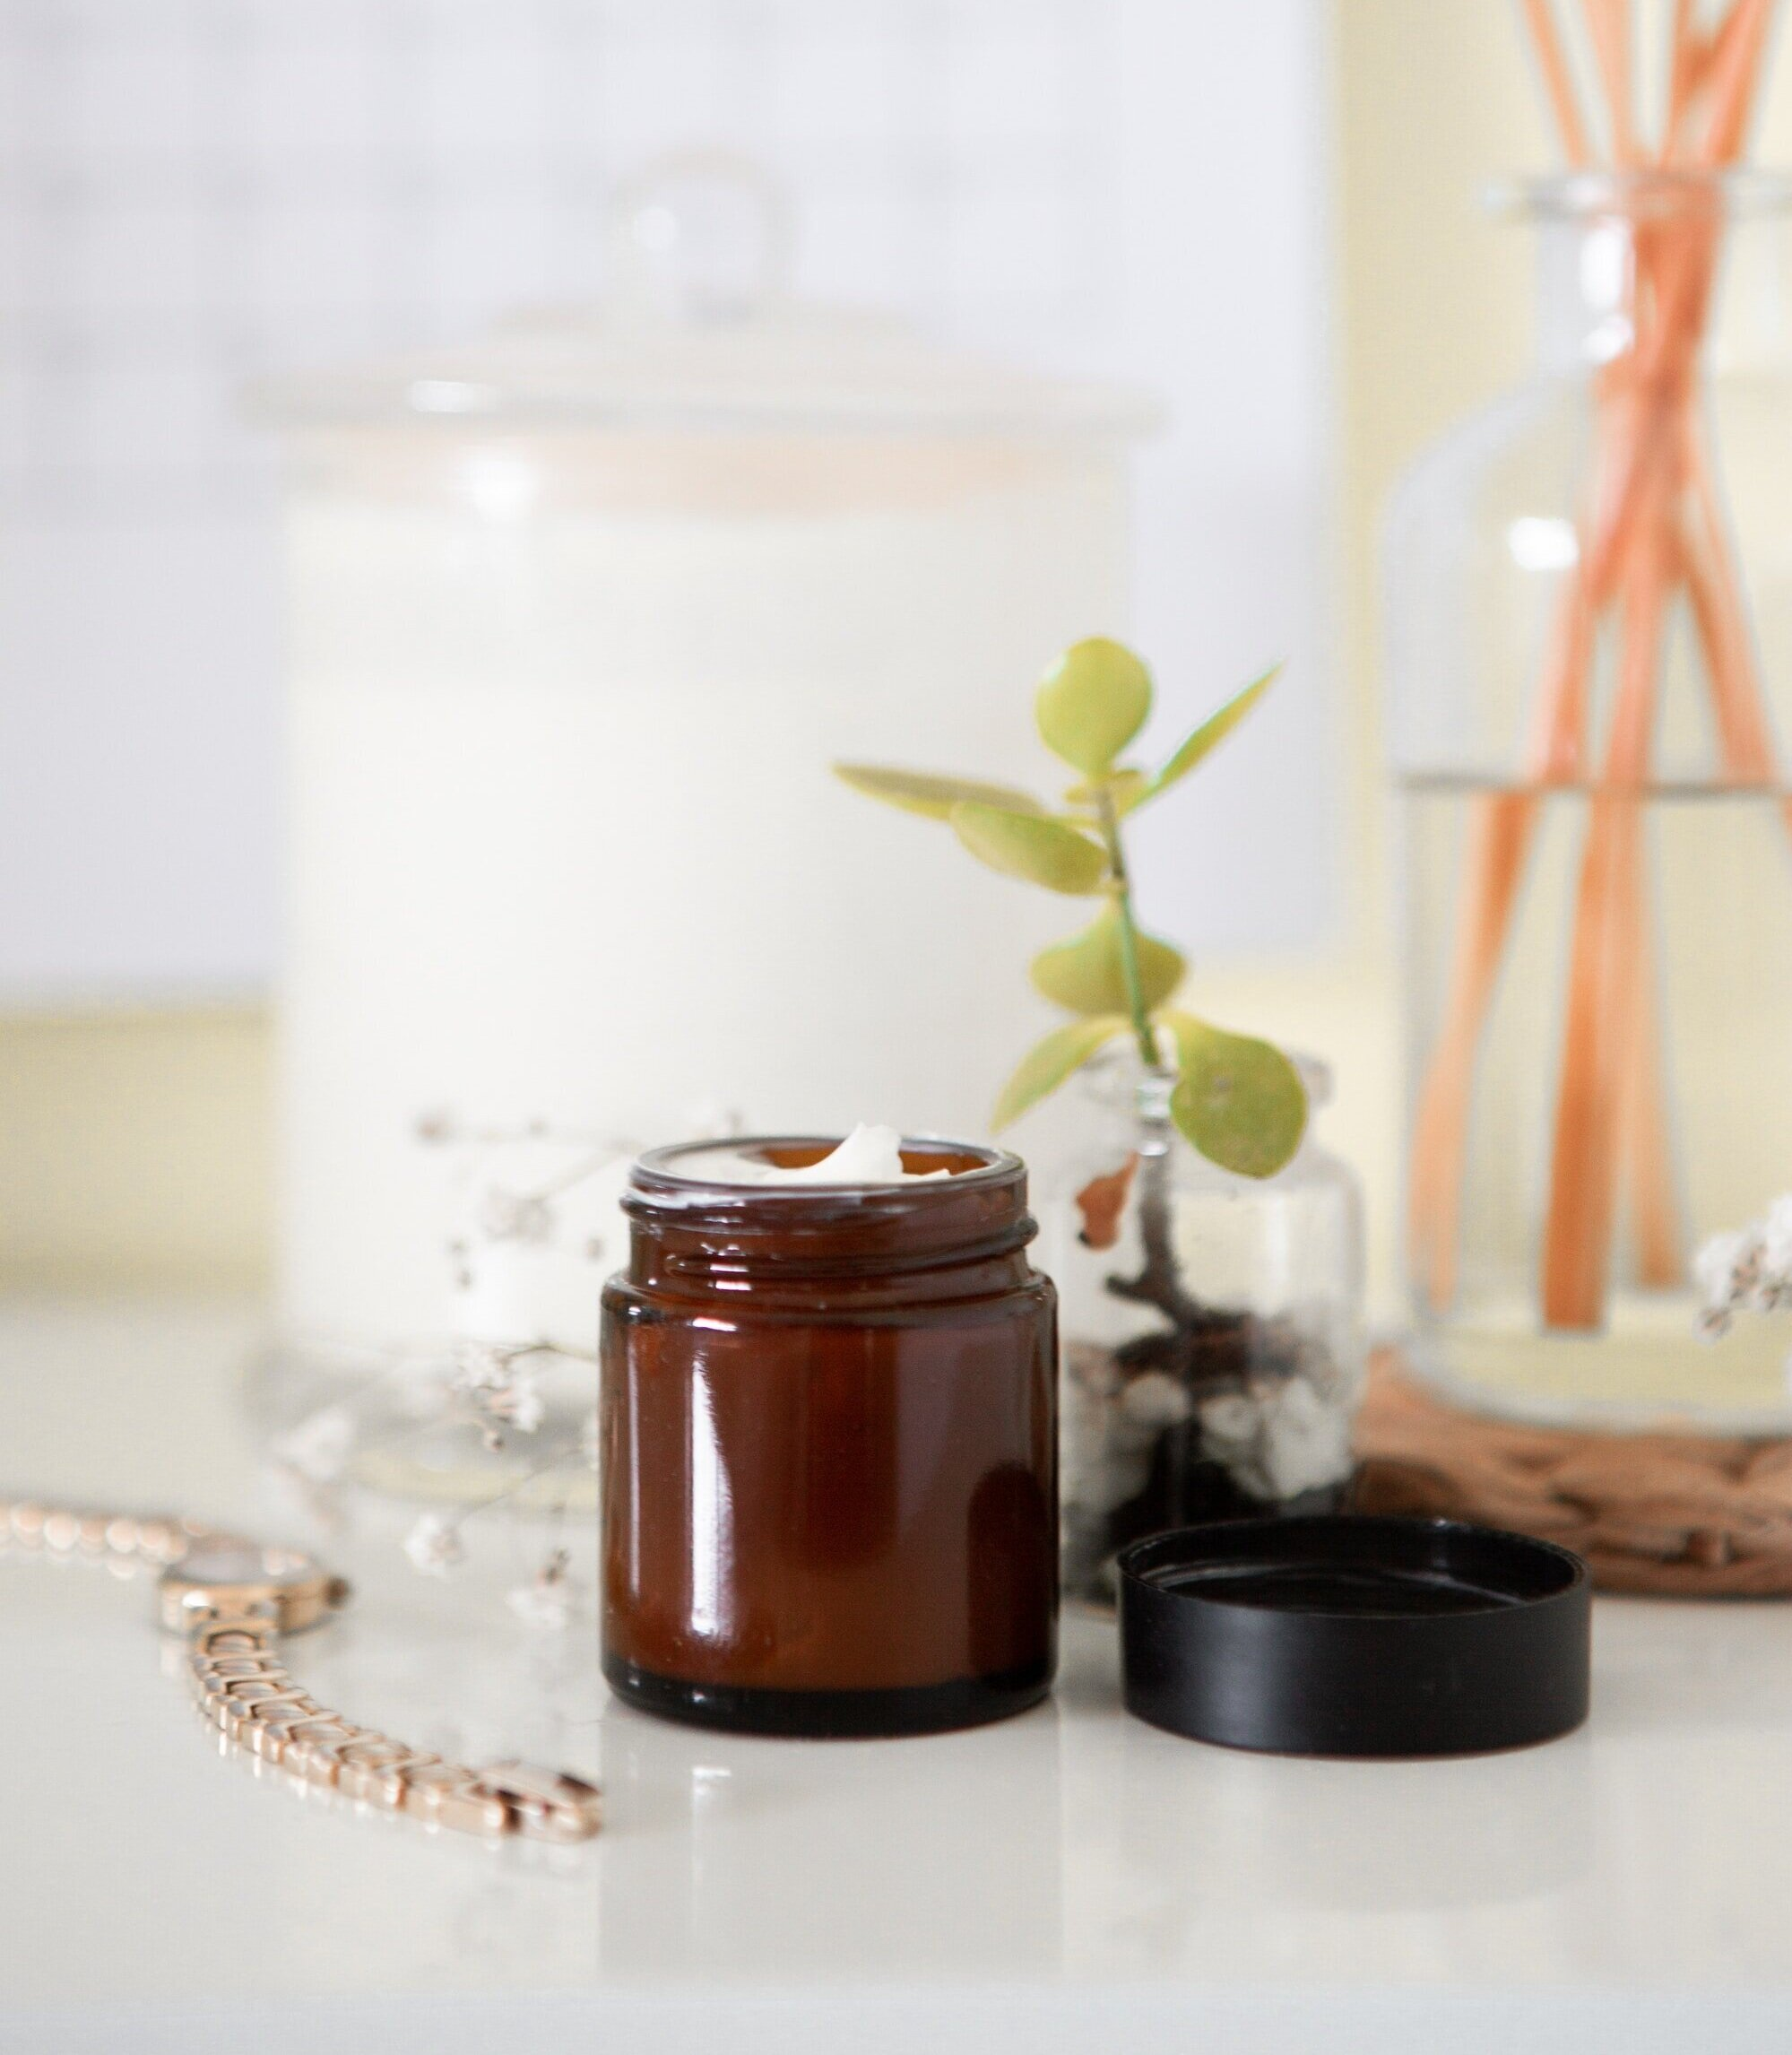 natural and toxin free skin care|Positively Jane .jpg